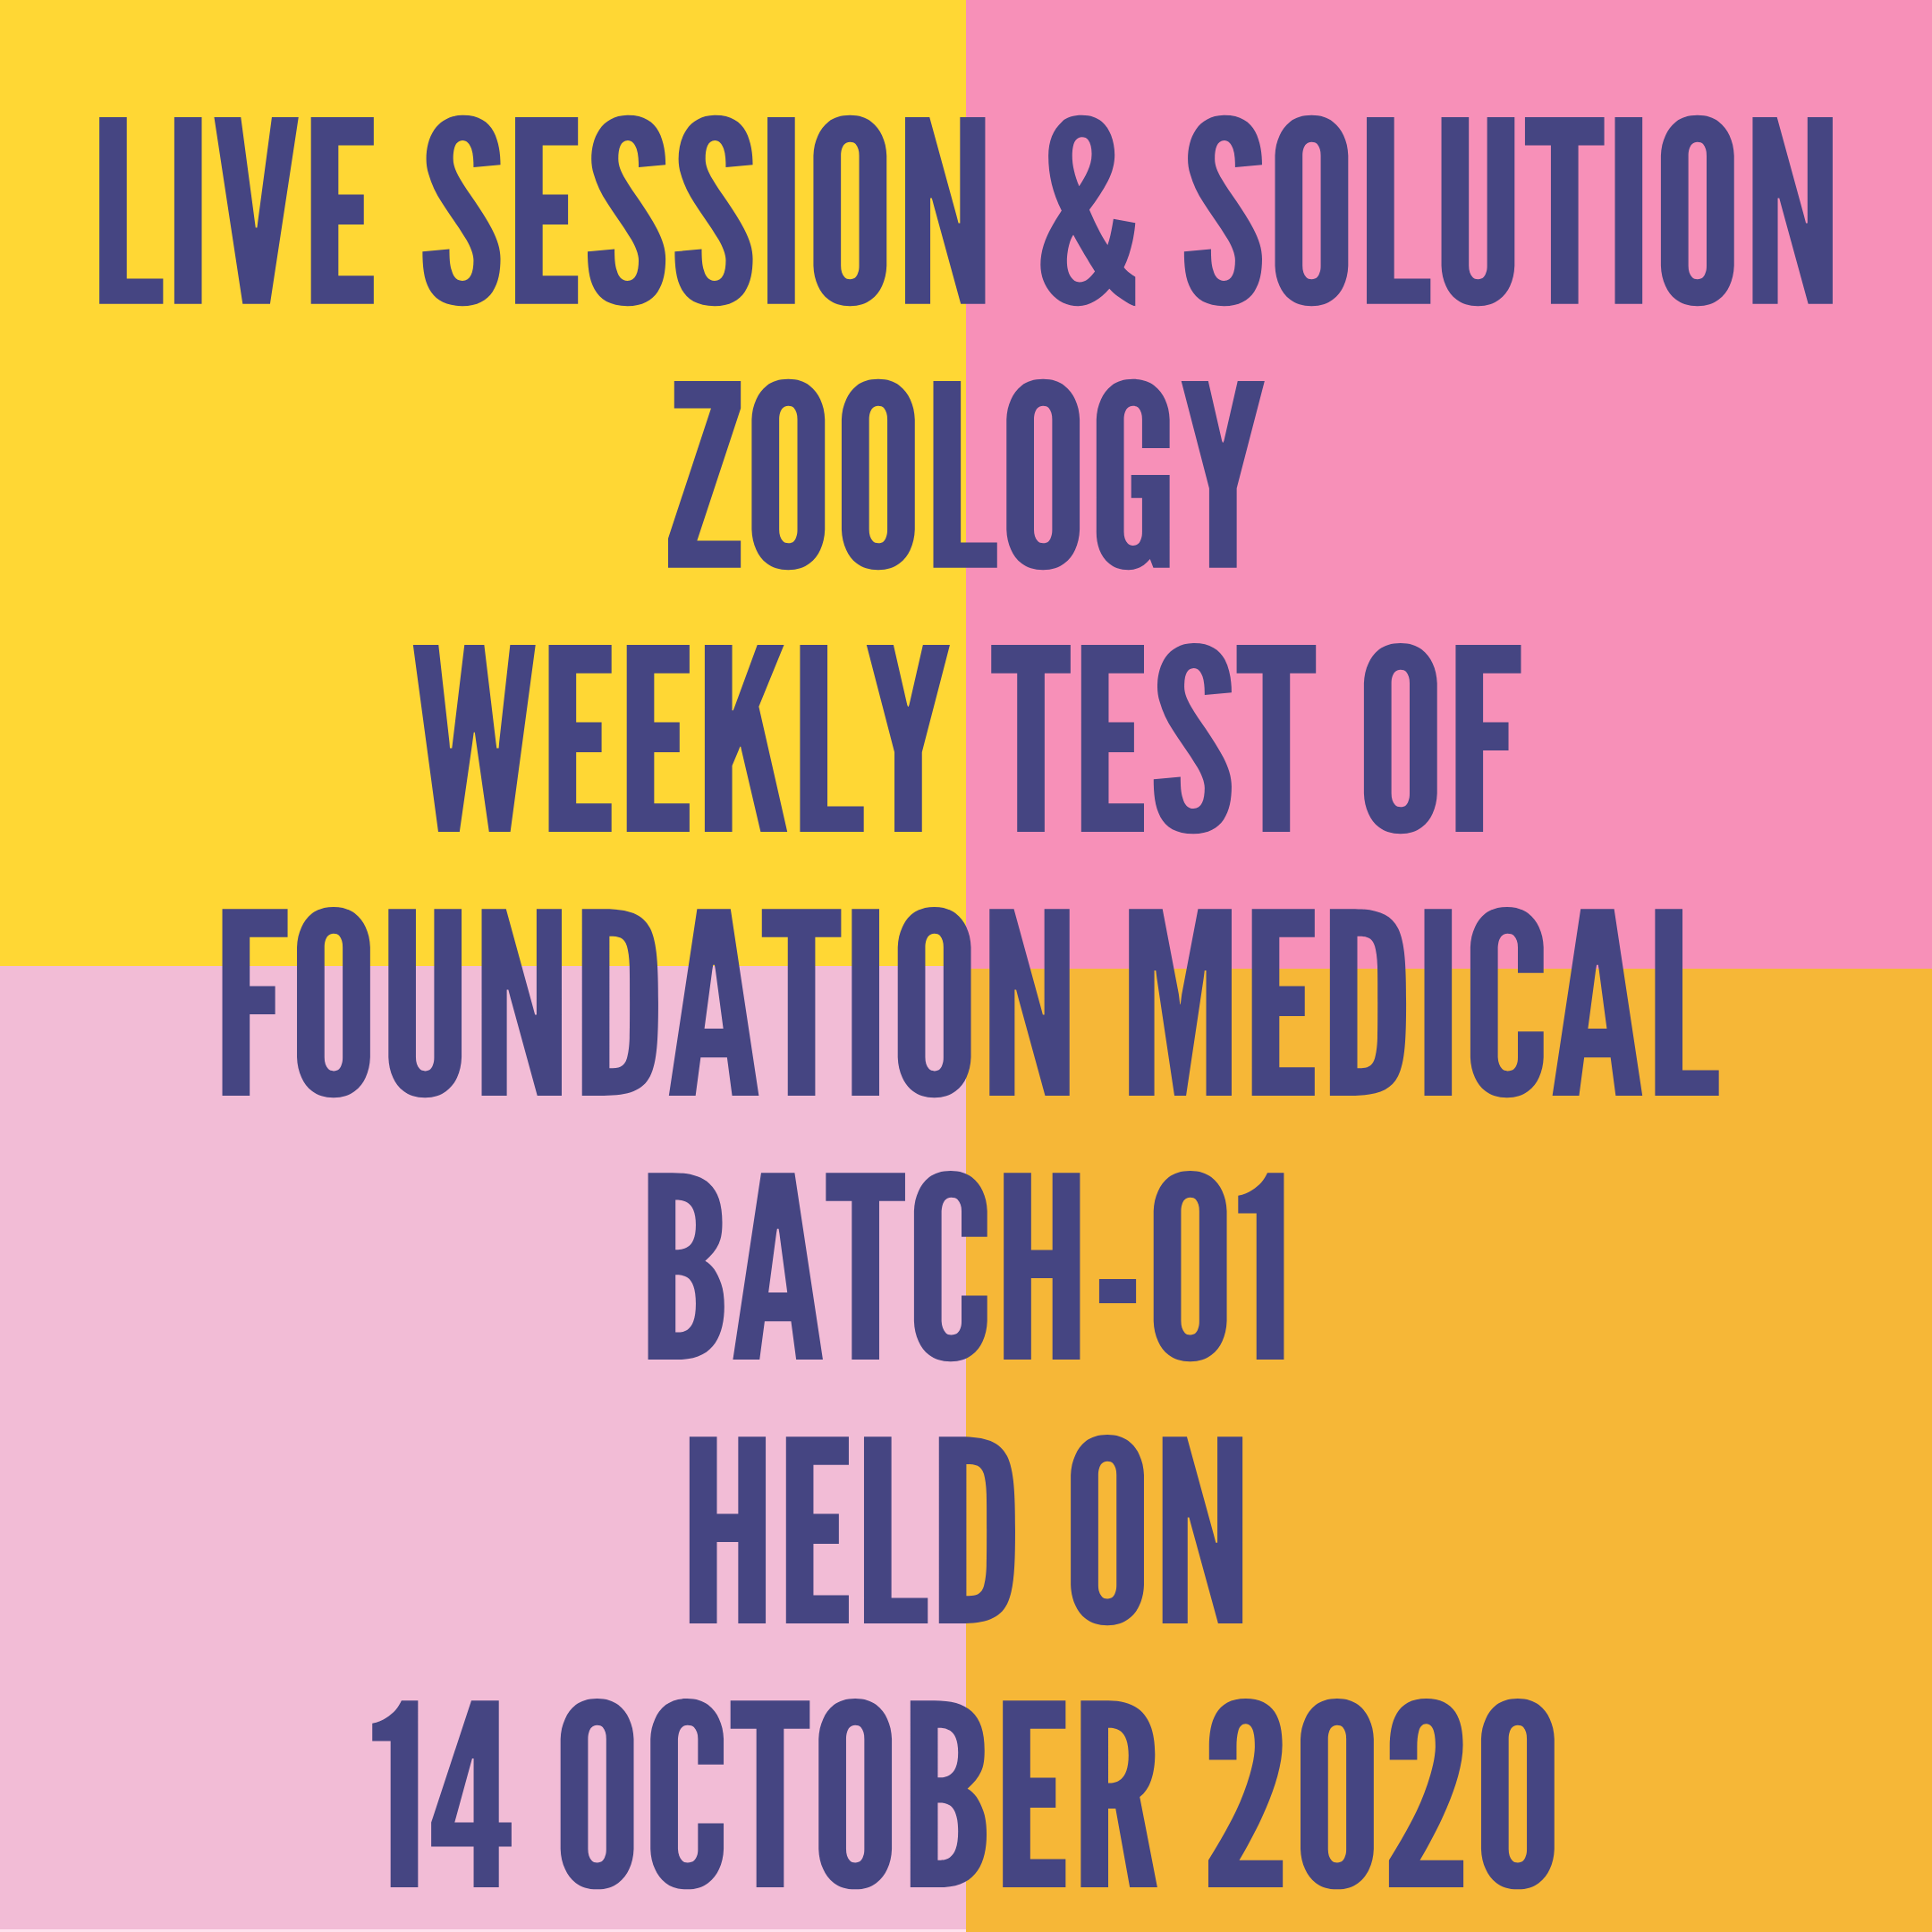 LIVE SESSION & SOLUTION ZOOLOGY WEEKLY TEST OF FOUNDATION MEDICAL BATCH-01 HELD ON 14 OCTOBER 2020